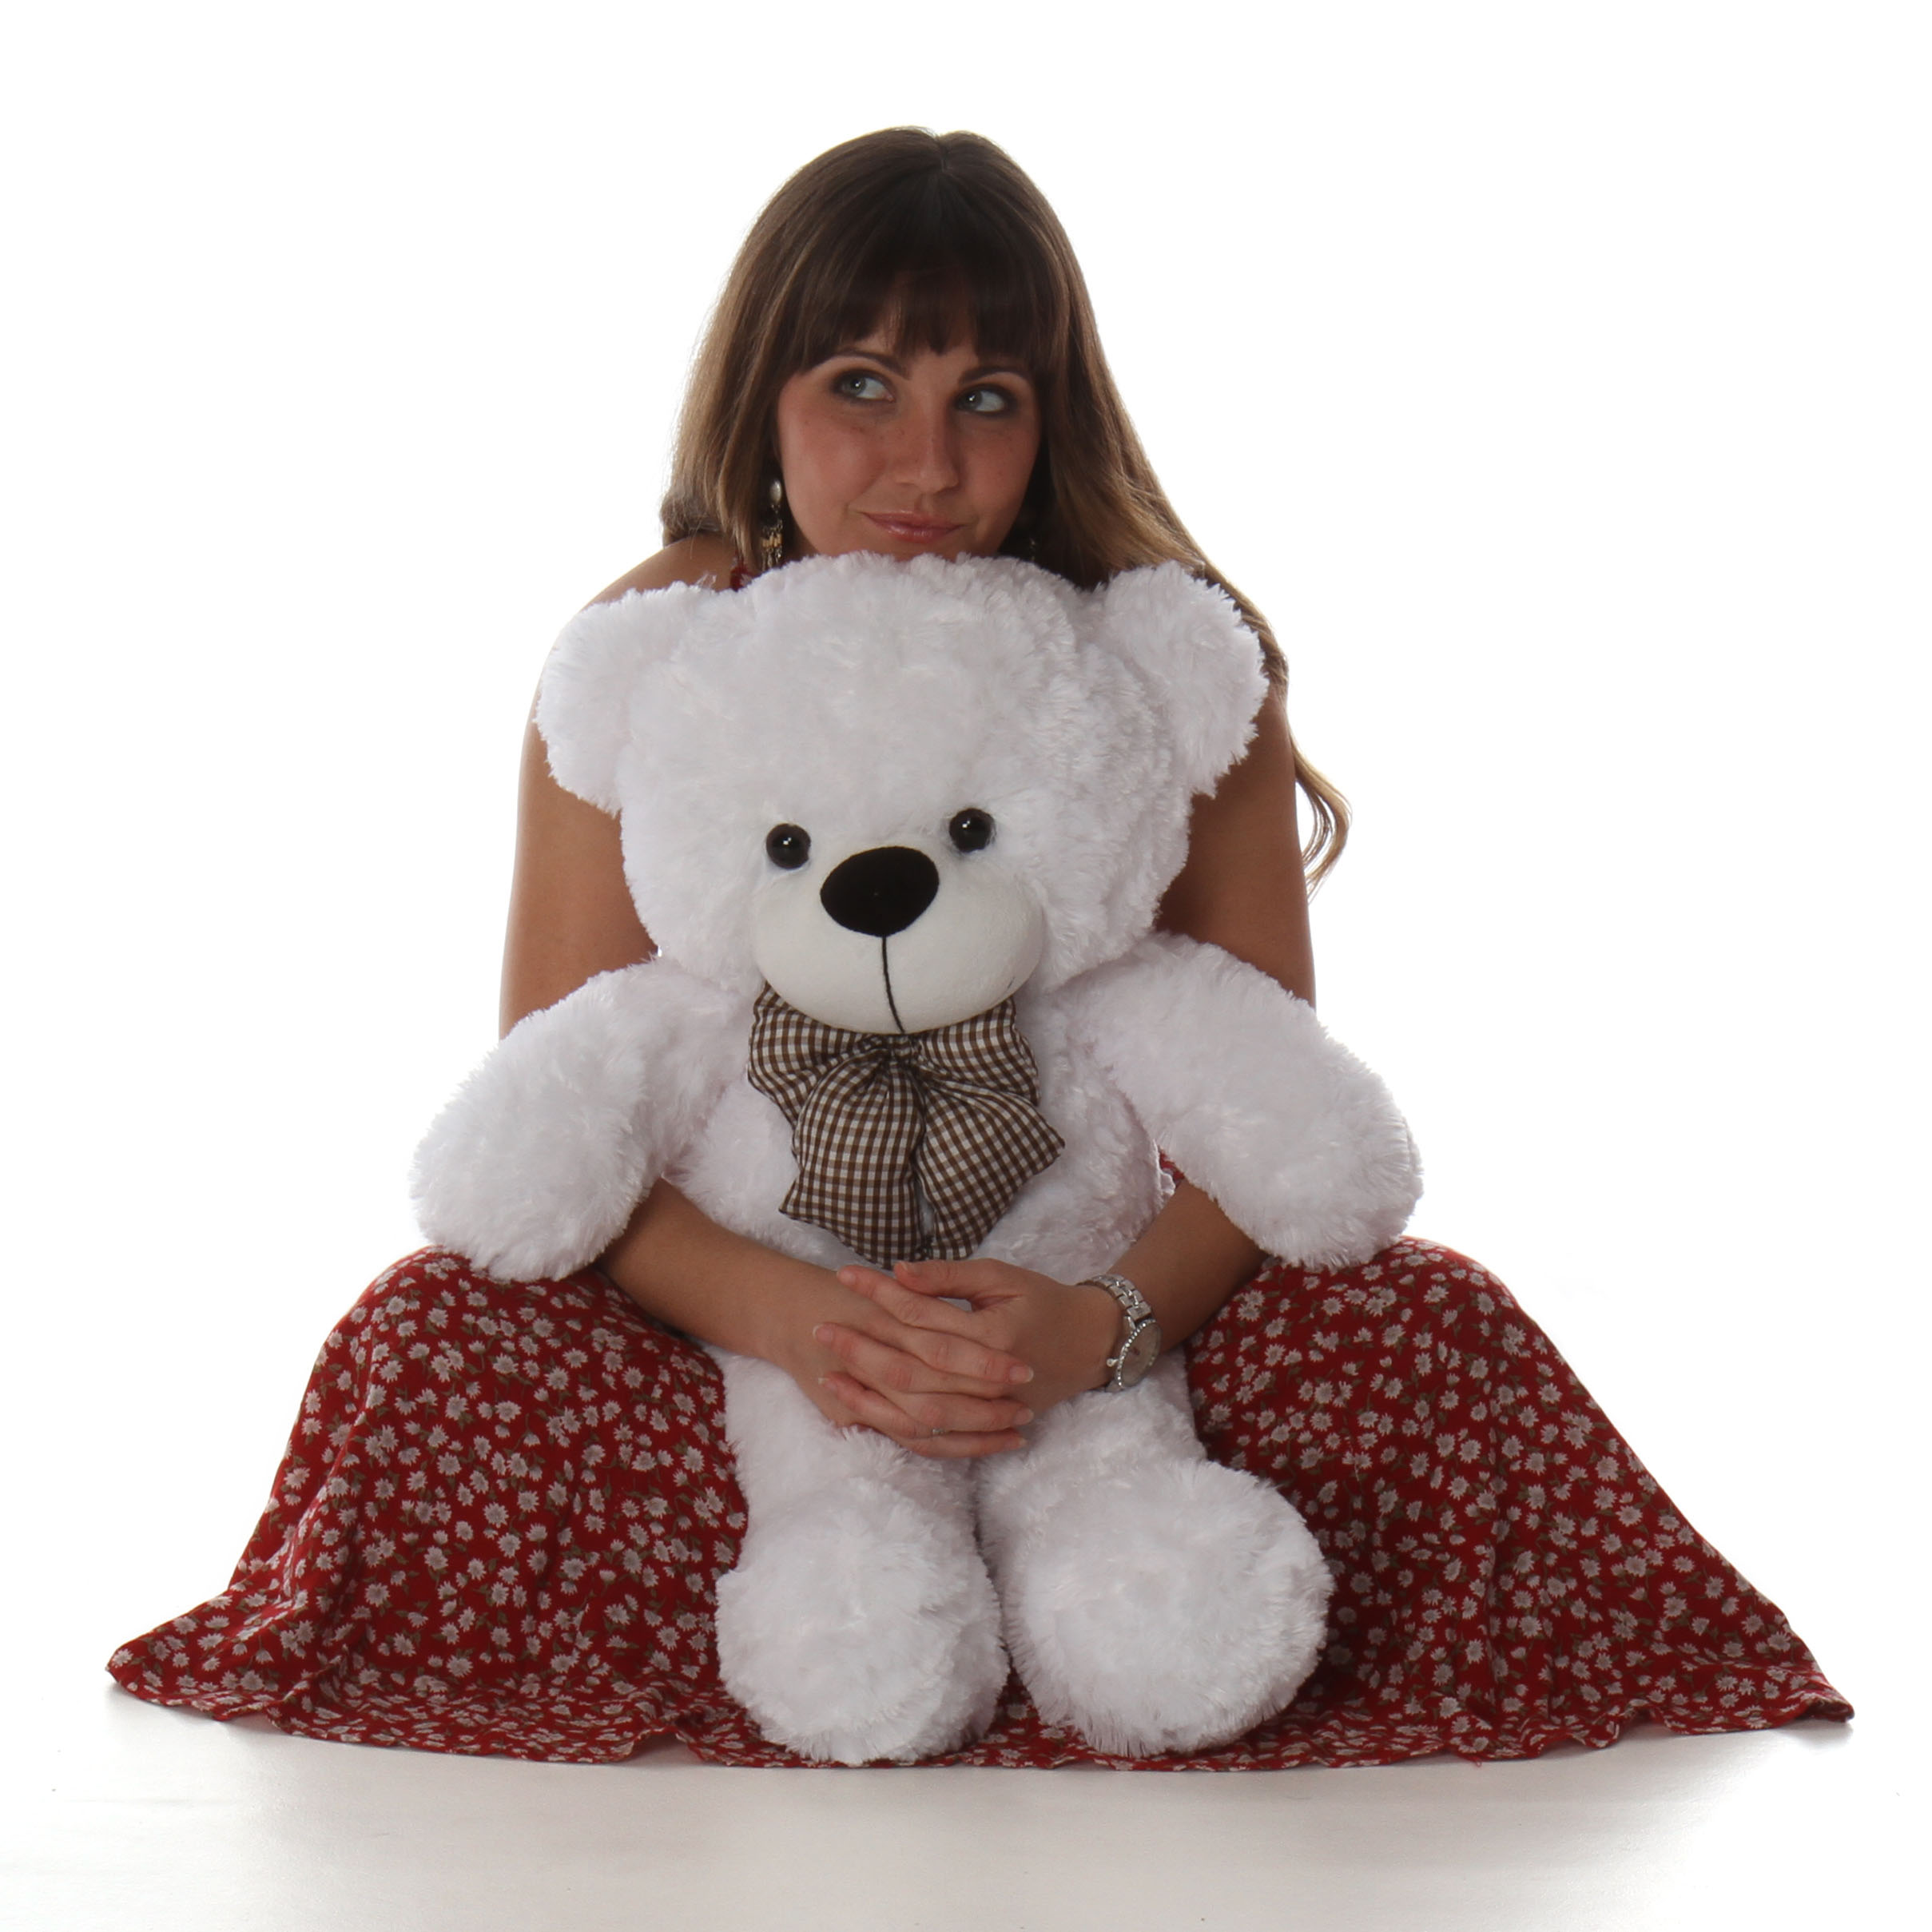 huggable-and-lovable-oversized-white-teddy-bear-coco-cuddles-30in.jpg